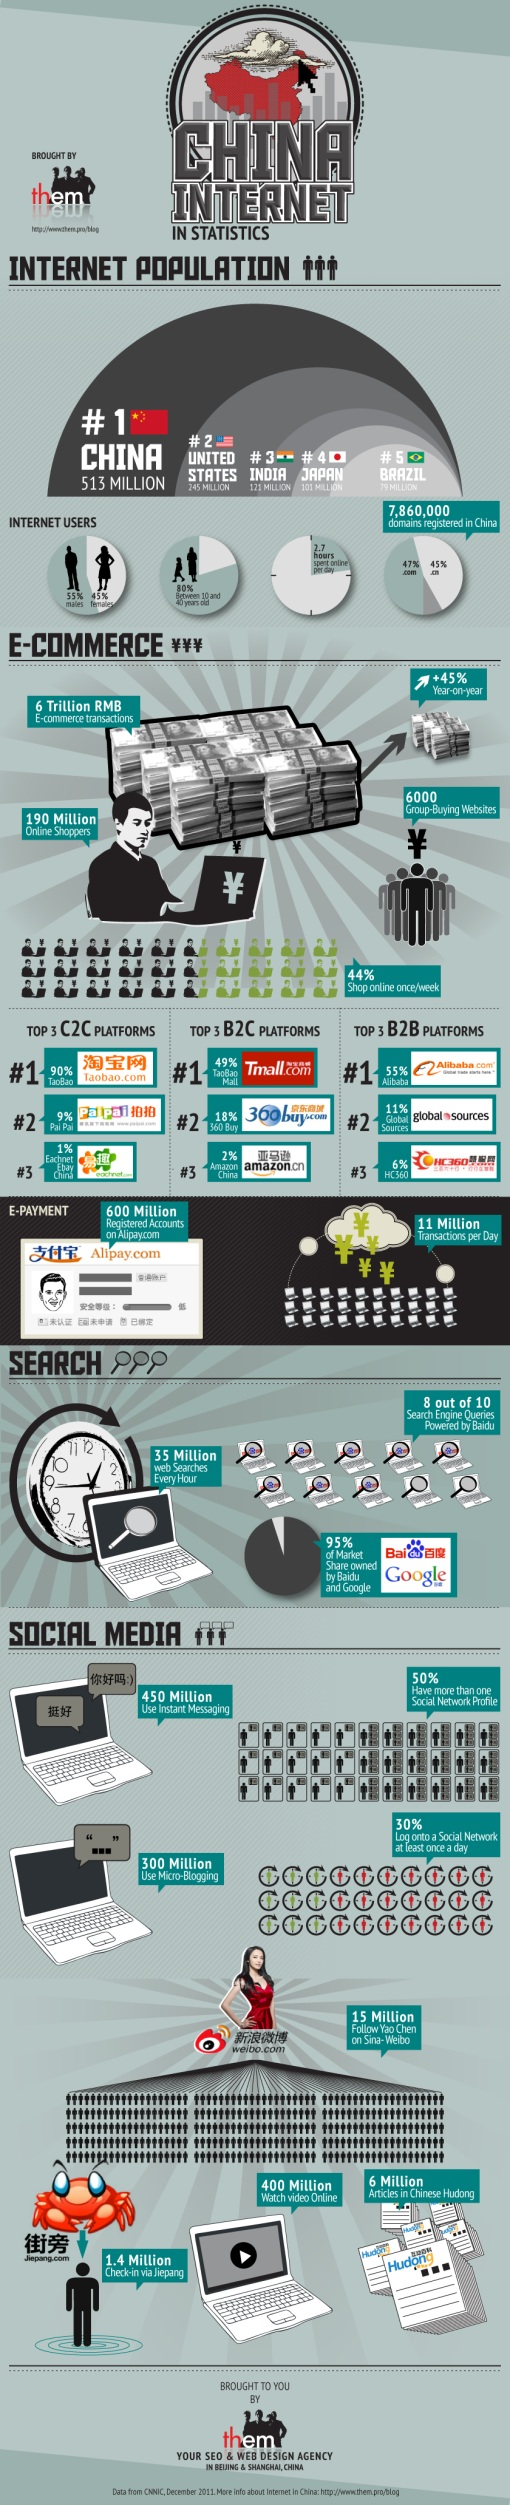 China internet statistics 2011 Ecommerce, search and social media in China by the numbers [Infographic]